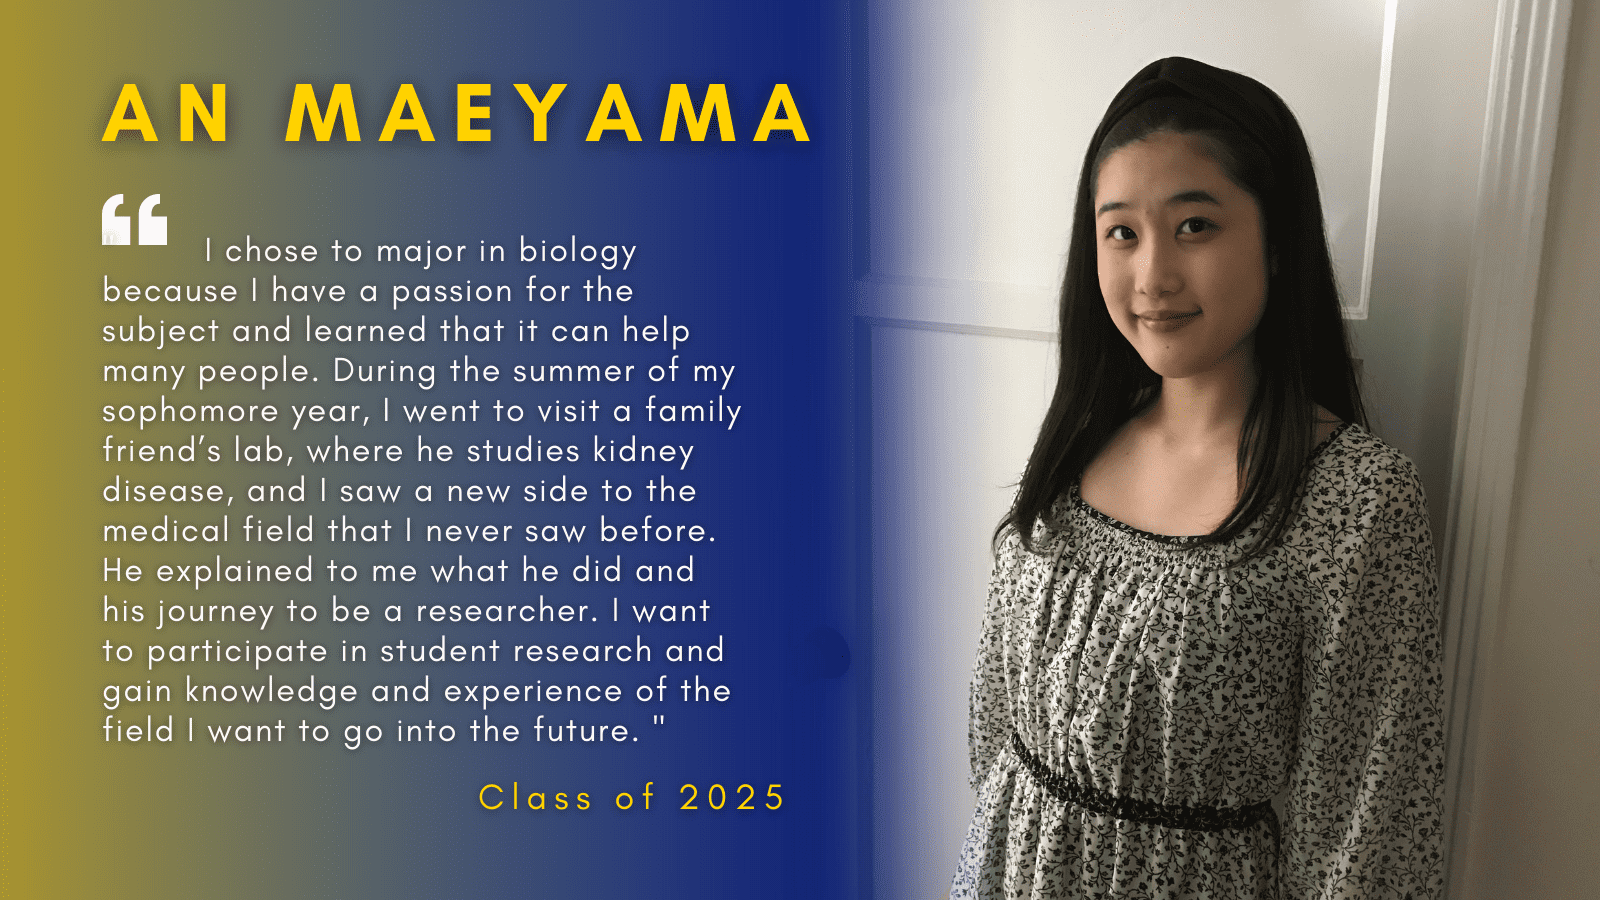 Image of An Maeyama with her quote.